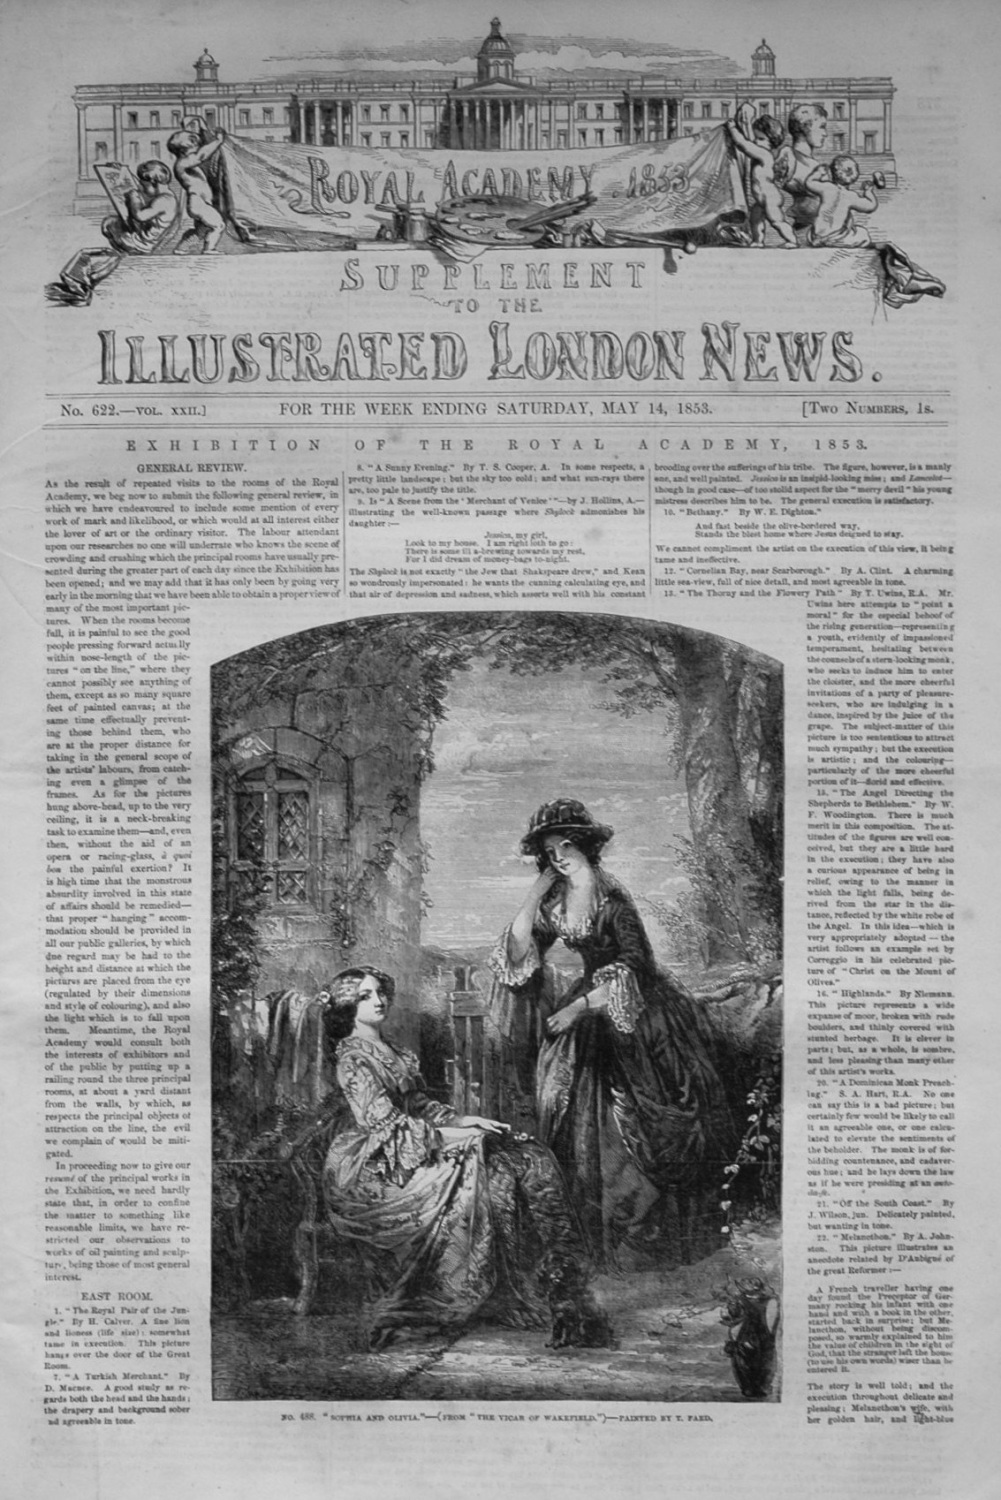 Illustrated London News (Supplement) For May 14th, 1853.